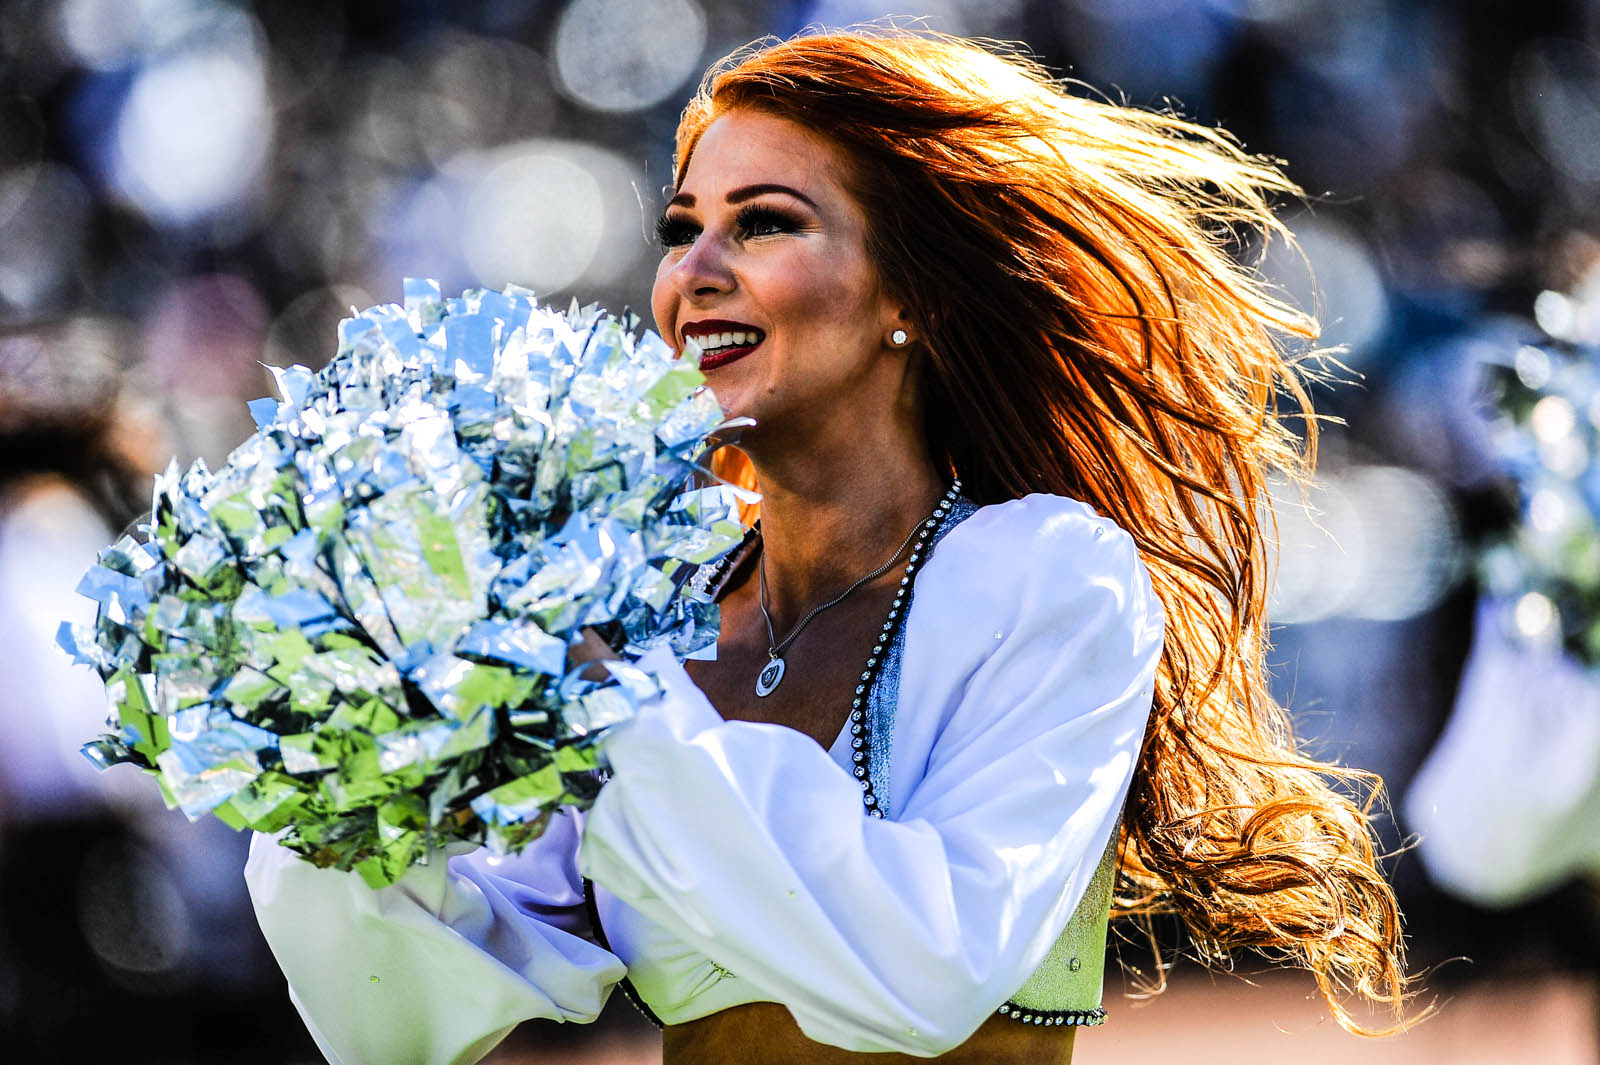 Wendy: Biomedical Engineer, NFL and NBA Cheerleader